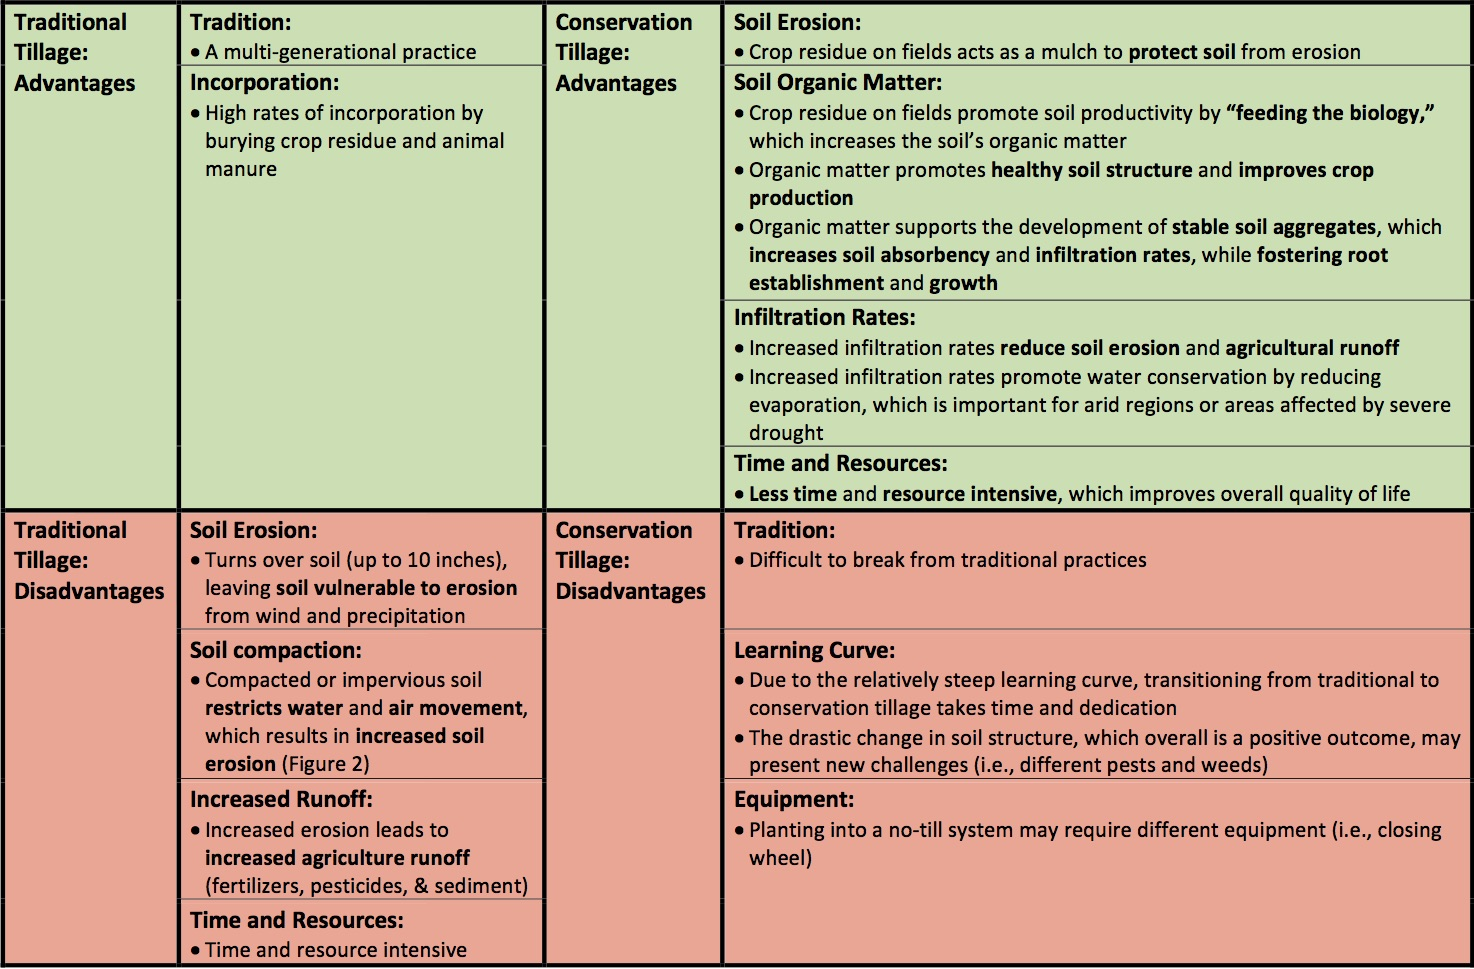 advantages and disadvantages of traditional tillage and conservation tillage